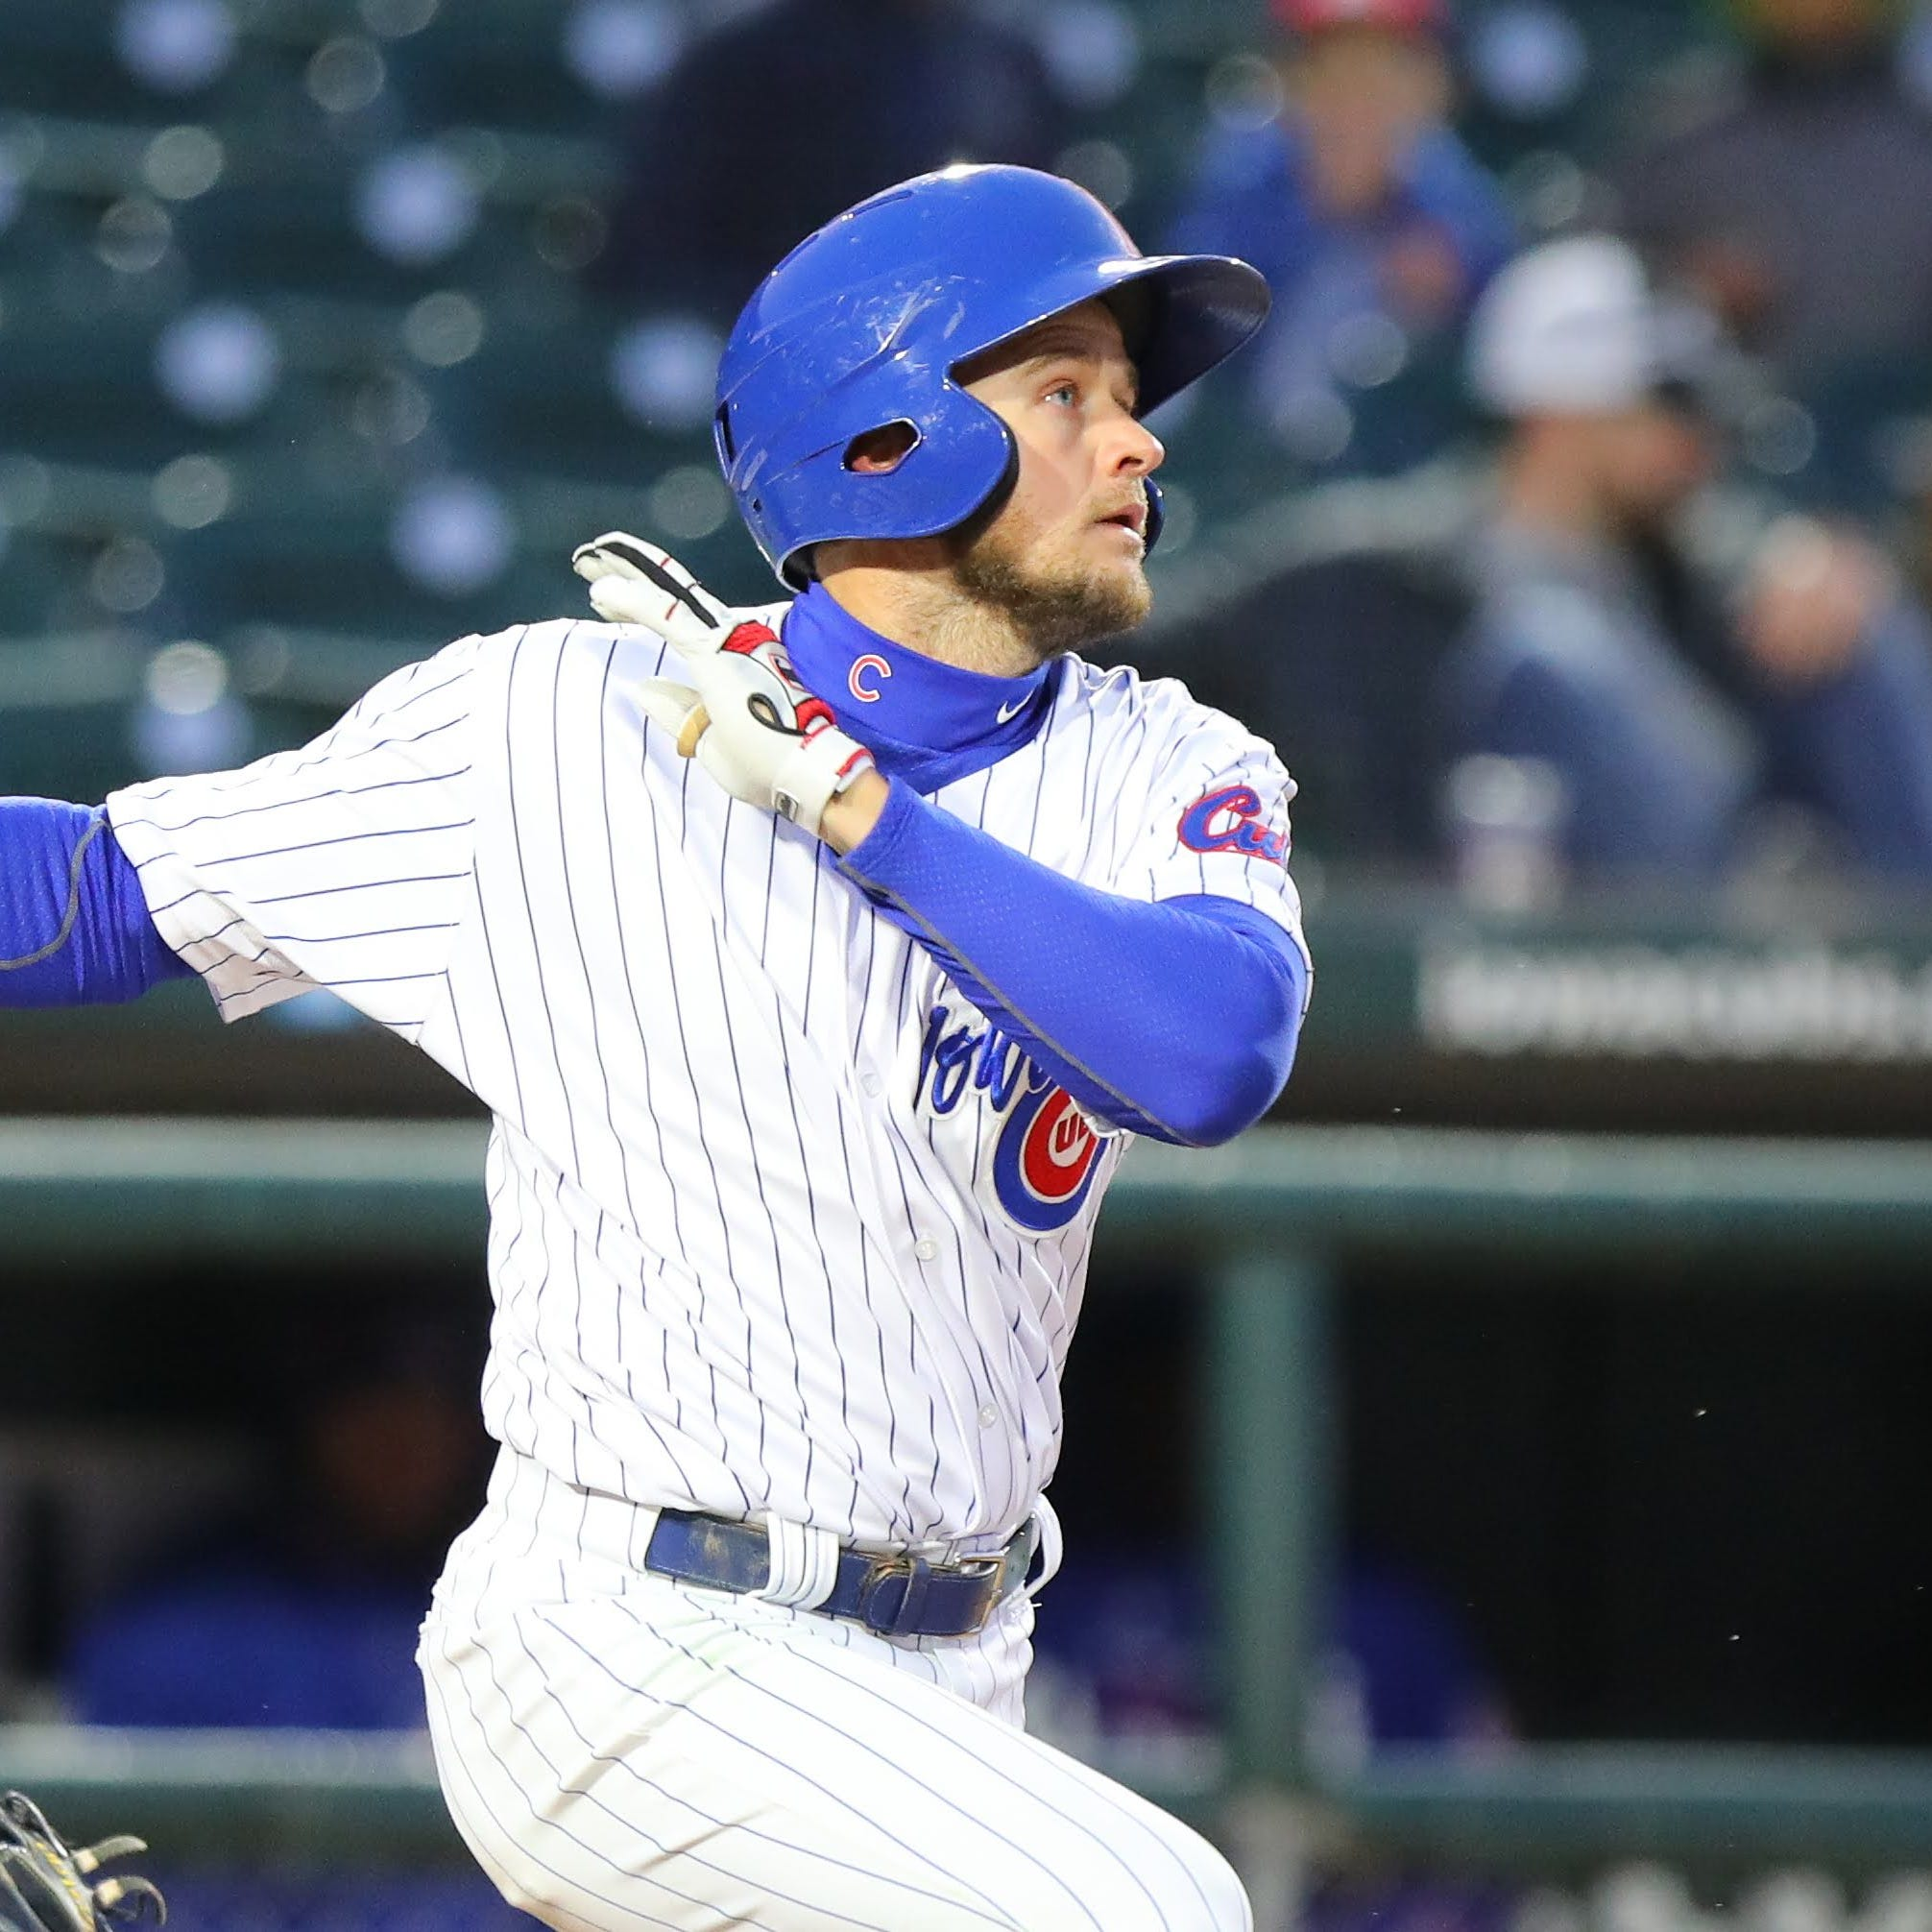 Donnie Dewees making the most of second stint with the Cubs